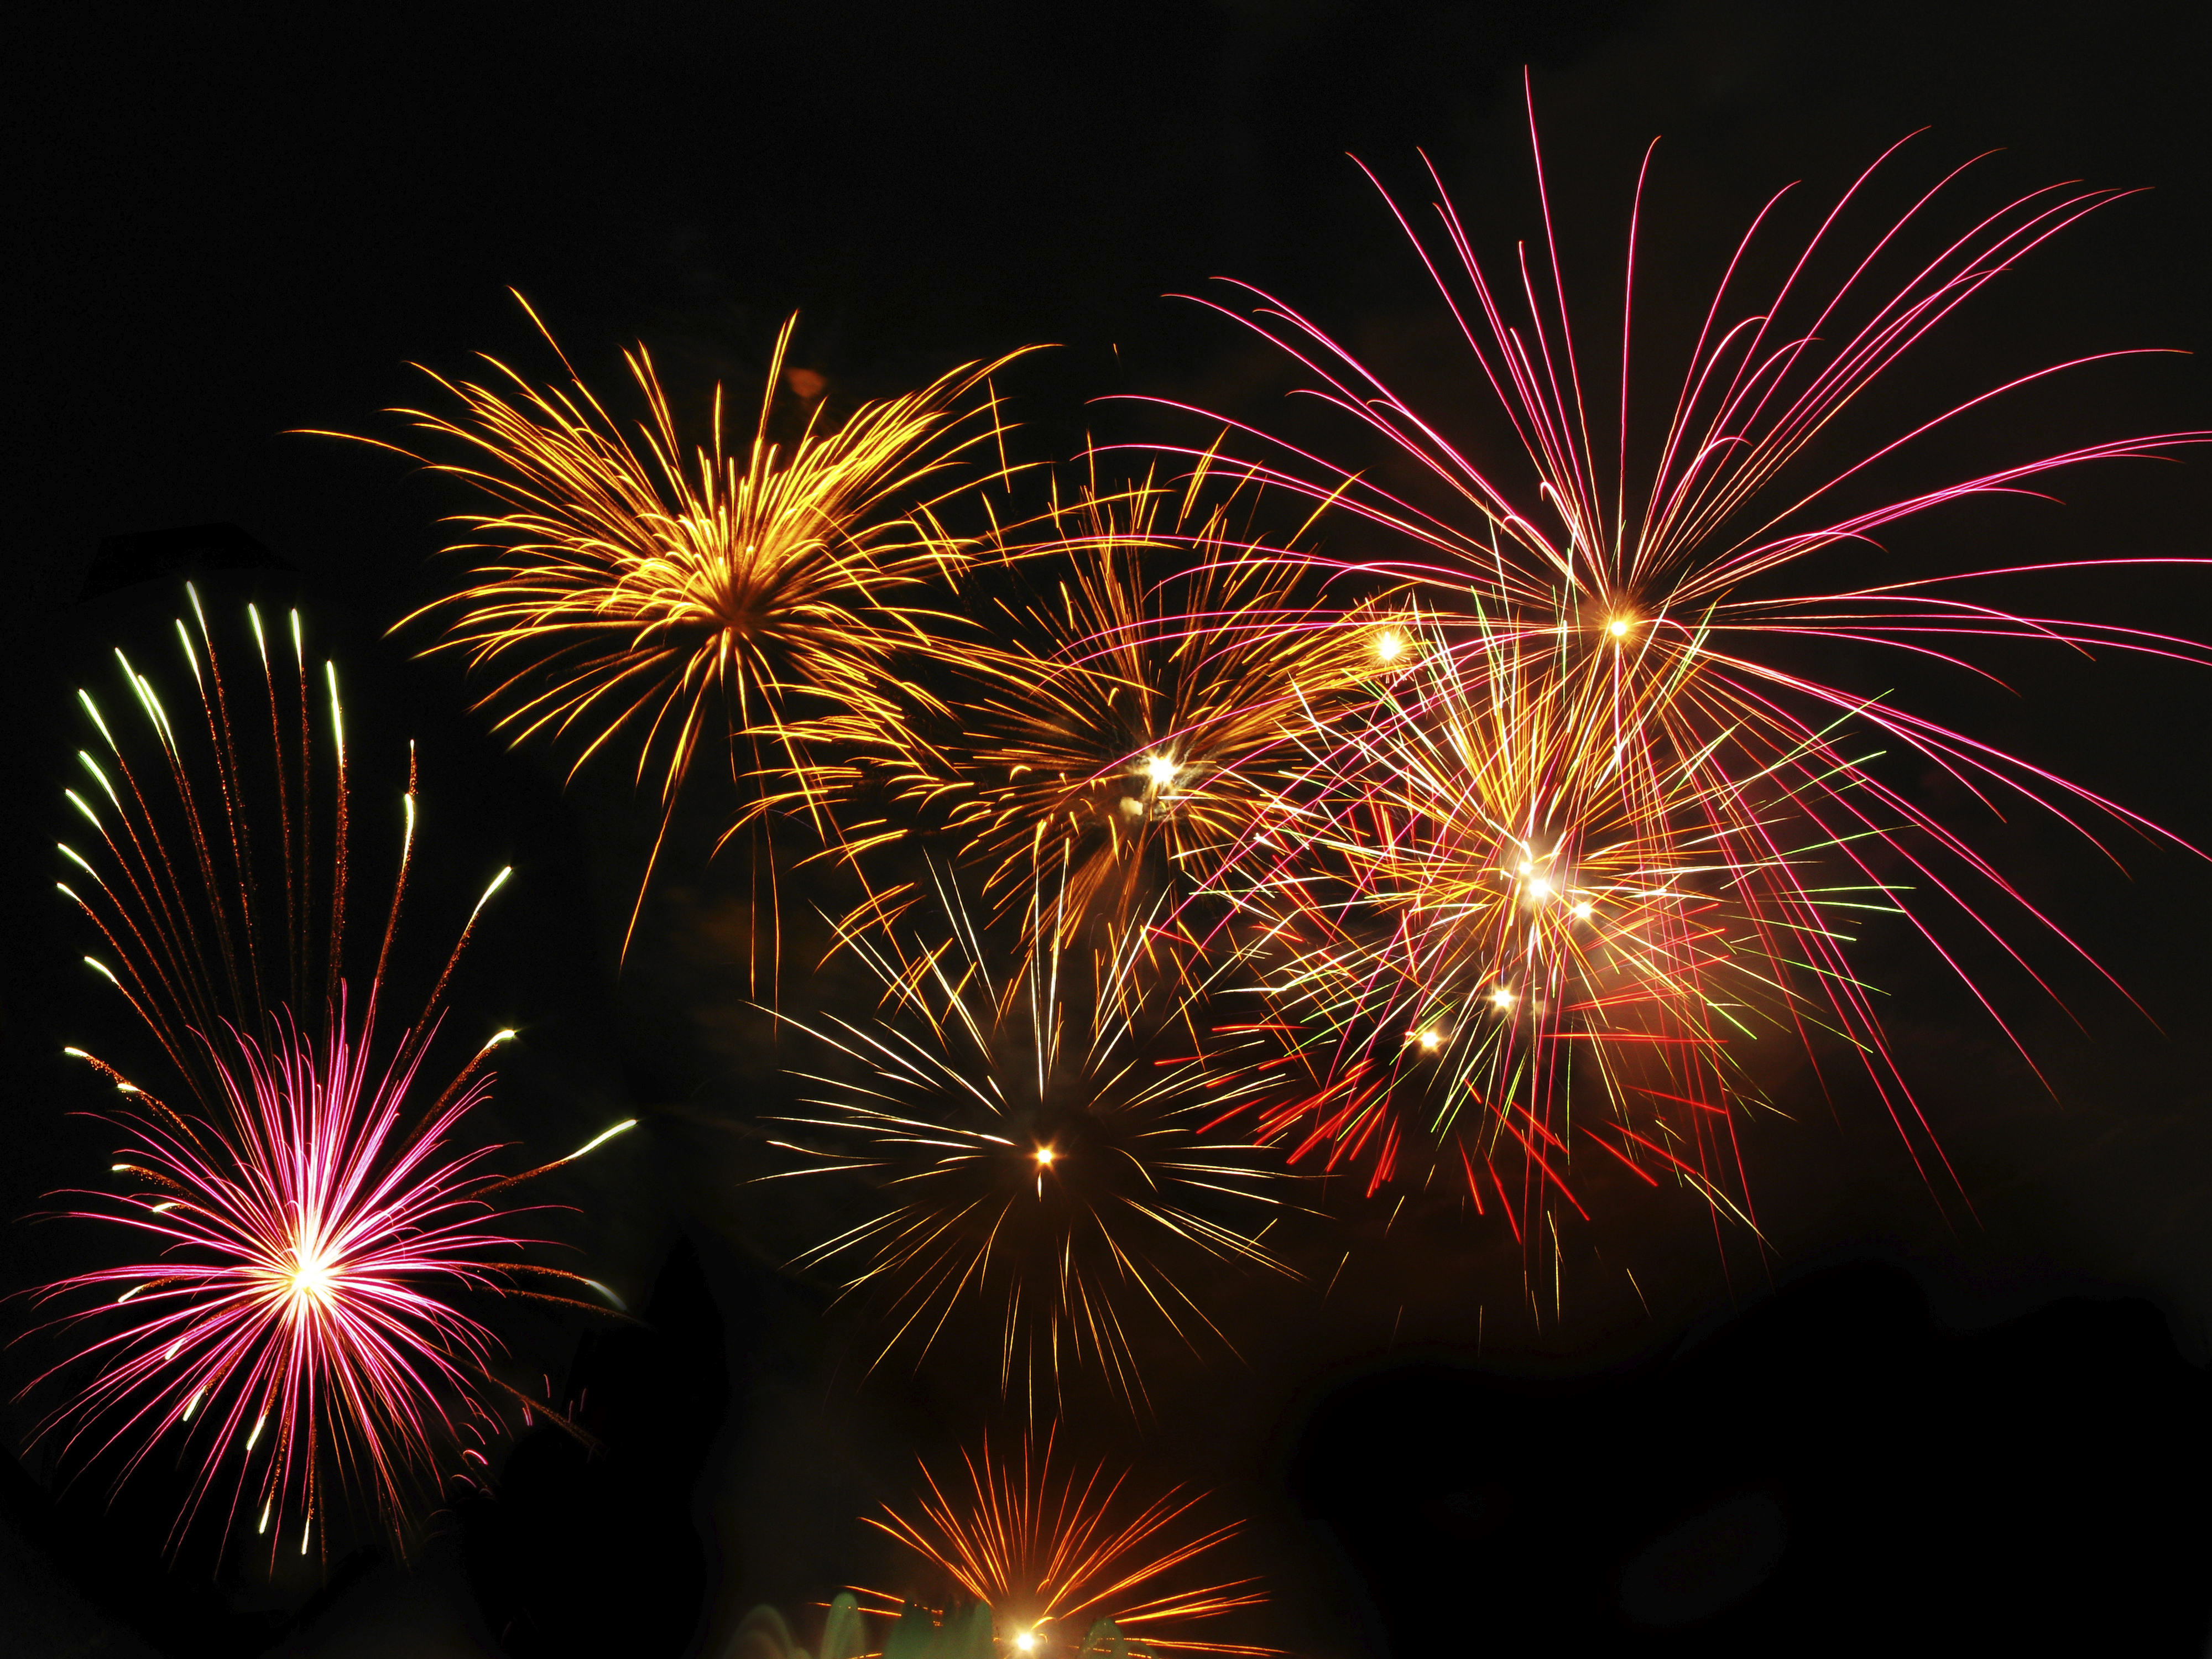 A fireworks show will light up the night over Brno!